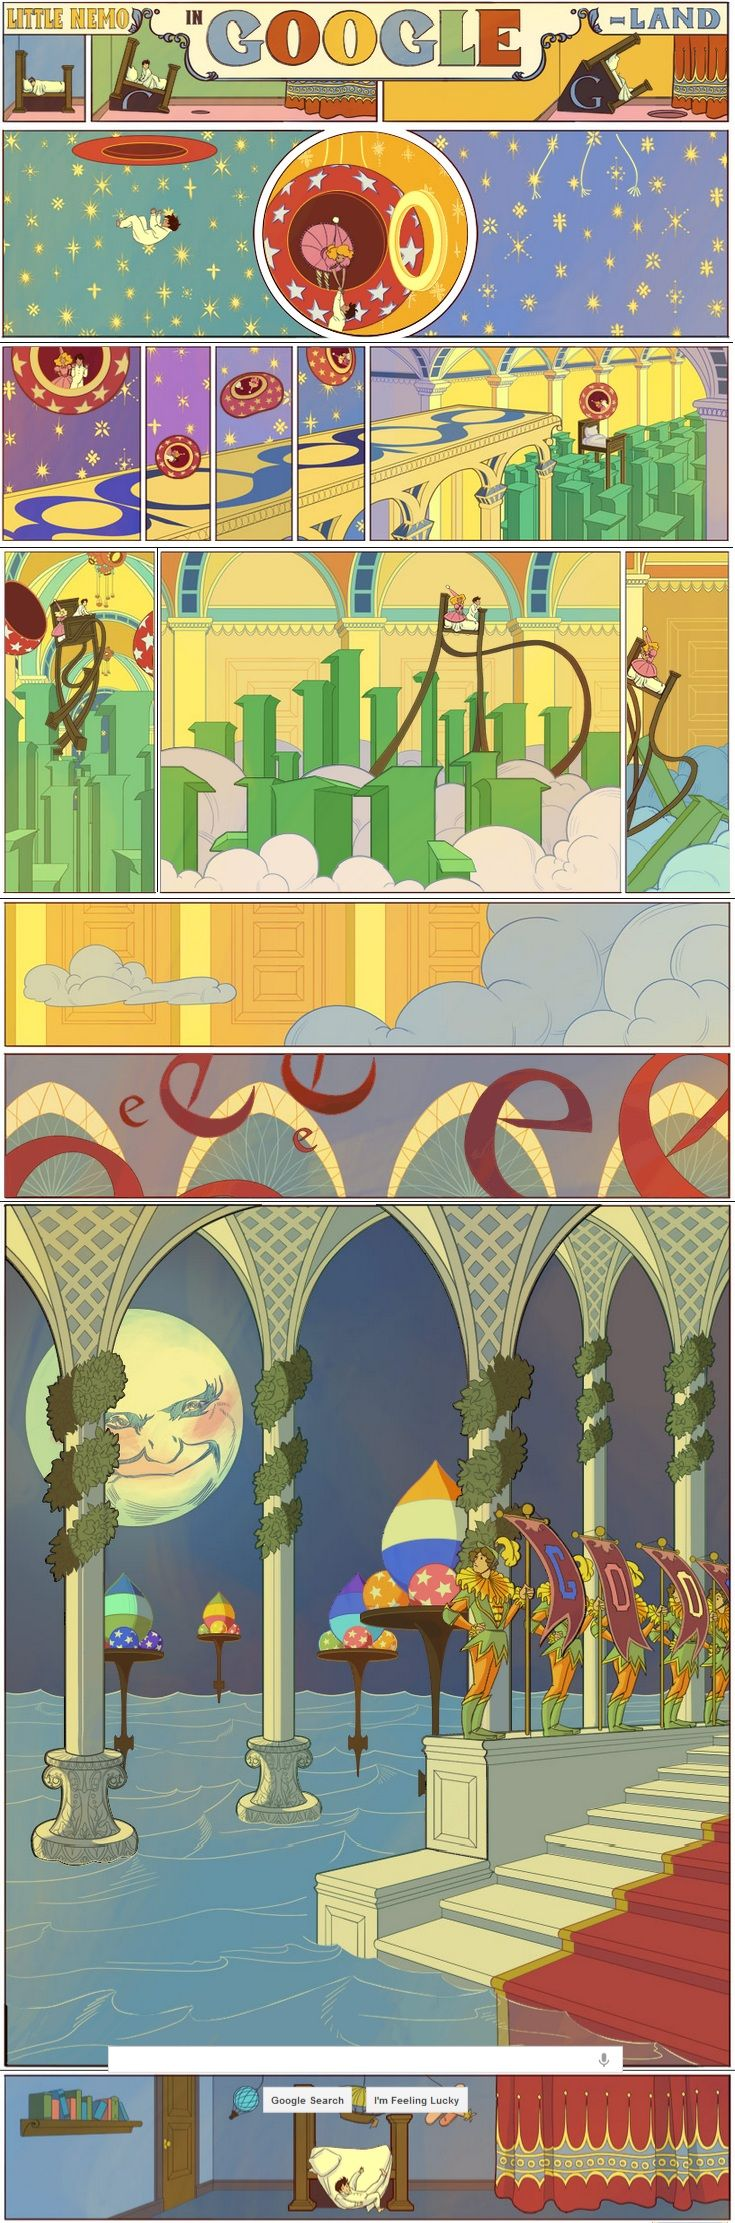 Google Honors Winsor McCay's 'Little Nemo In Slumberland' - Forbes: An interactive animation honoring Winsor McCay's 'Little Nemo In Slumberland' comics on their 107th anniversary. Thanks to @Elizabeth Silbermann! #Winsor_McCay #Nemo_in_Slumberland #Google